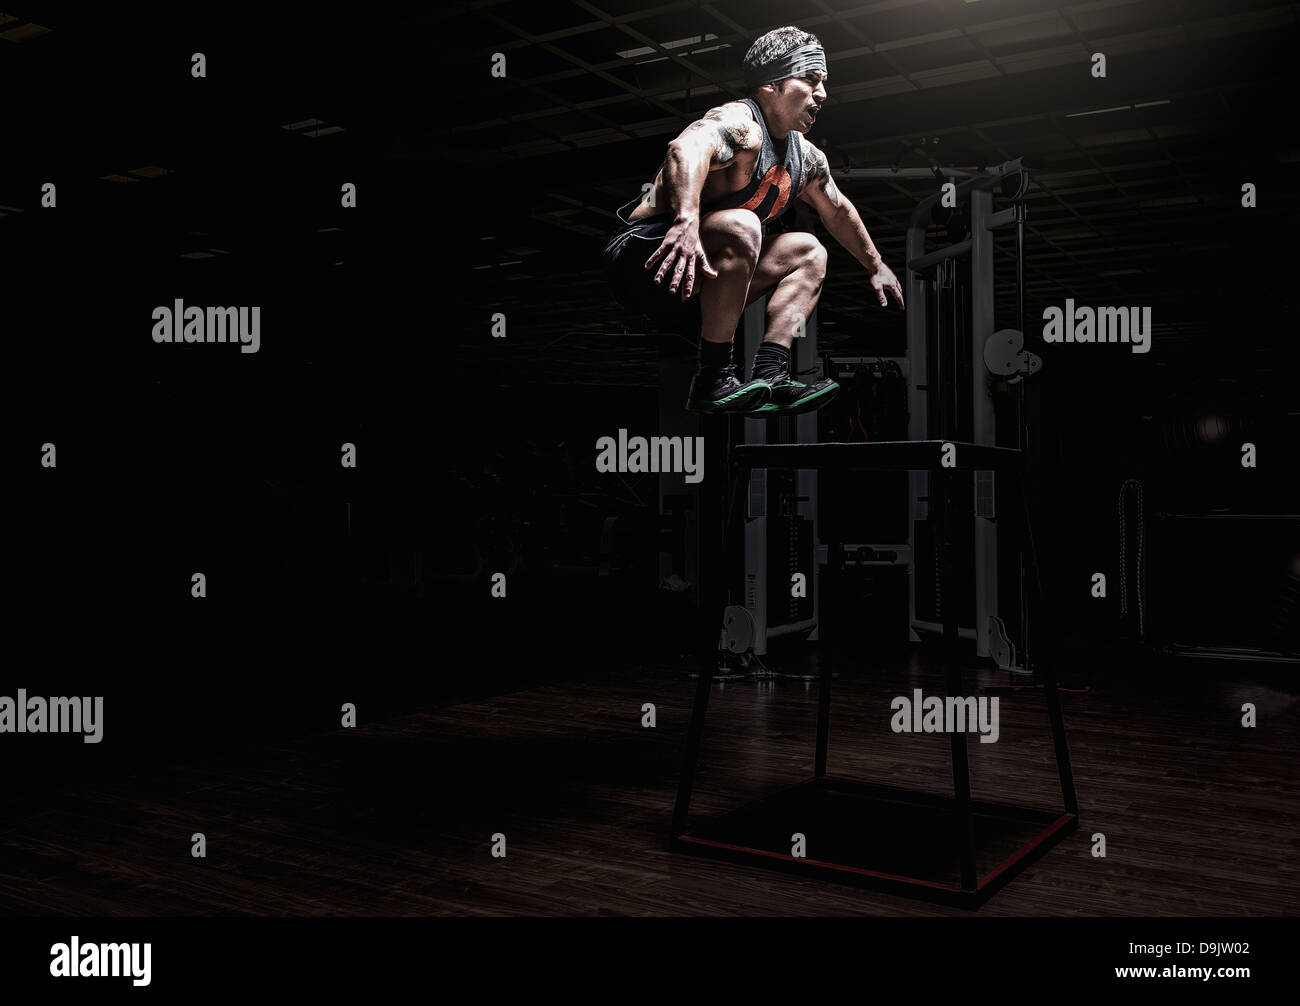 Young man leaping in gym - Stock Image